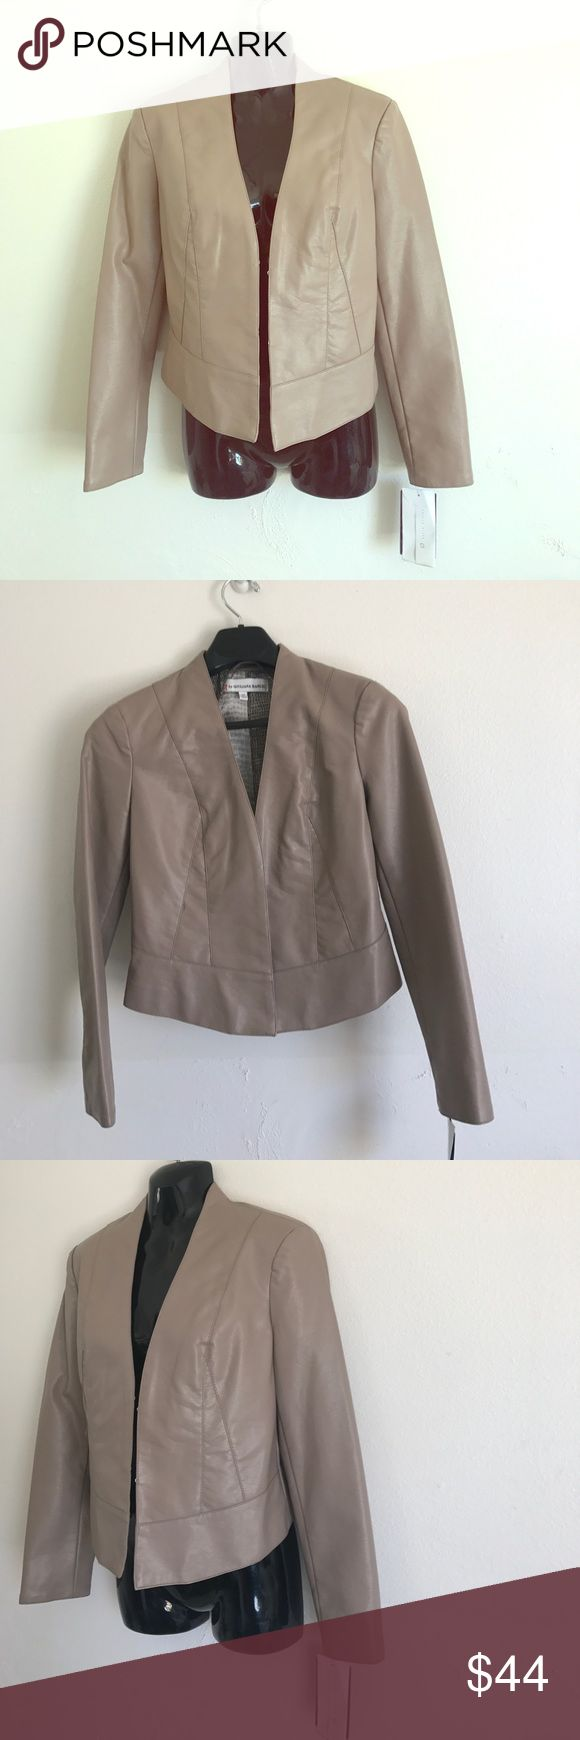 G By Giuliana Rancic Faux Leather Taupe Jacket XS Length Is 20 Inches From  Top Of Jacket In The Front. NWT! G By Giuliana Rancic. Color Is Beige Or  Taupe.